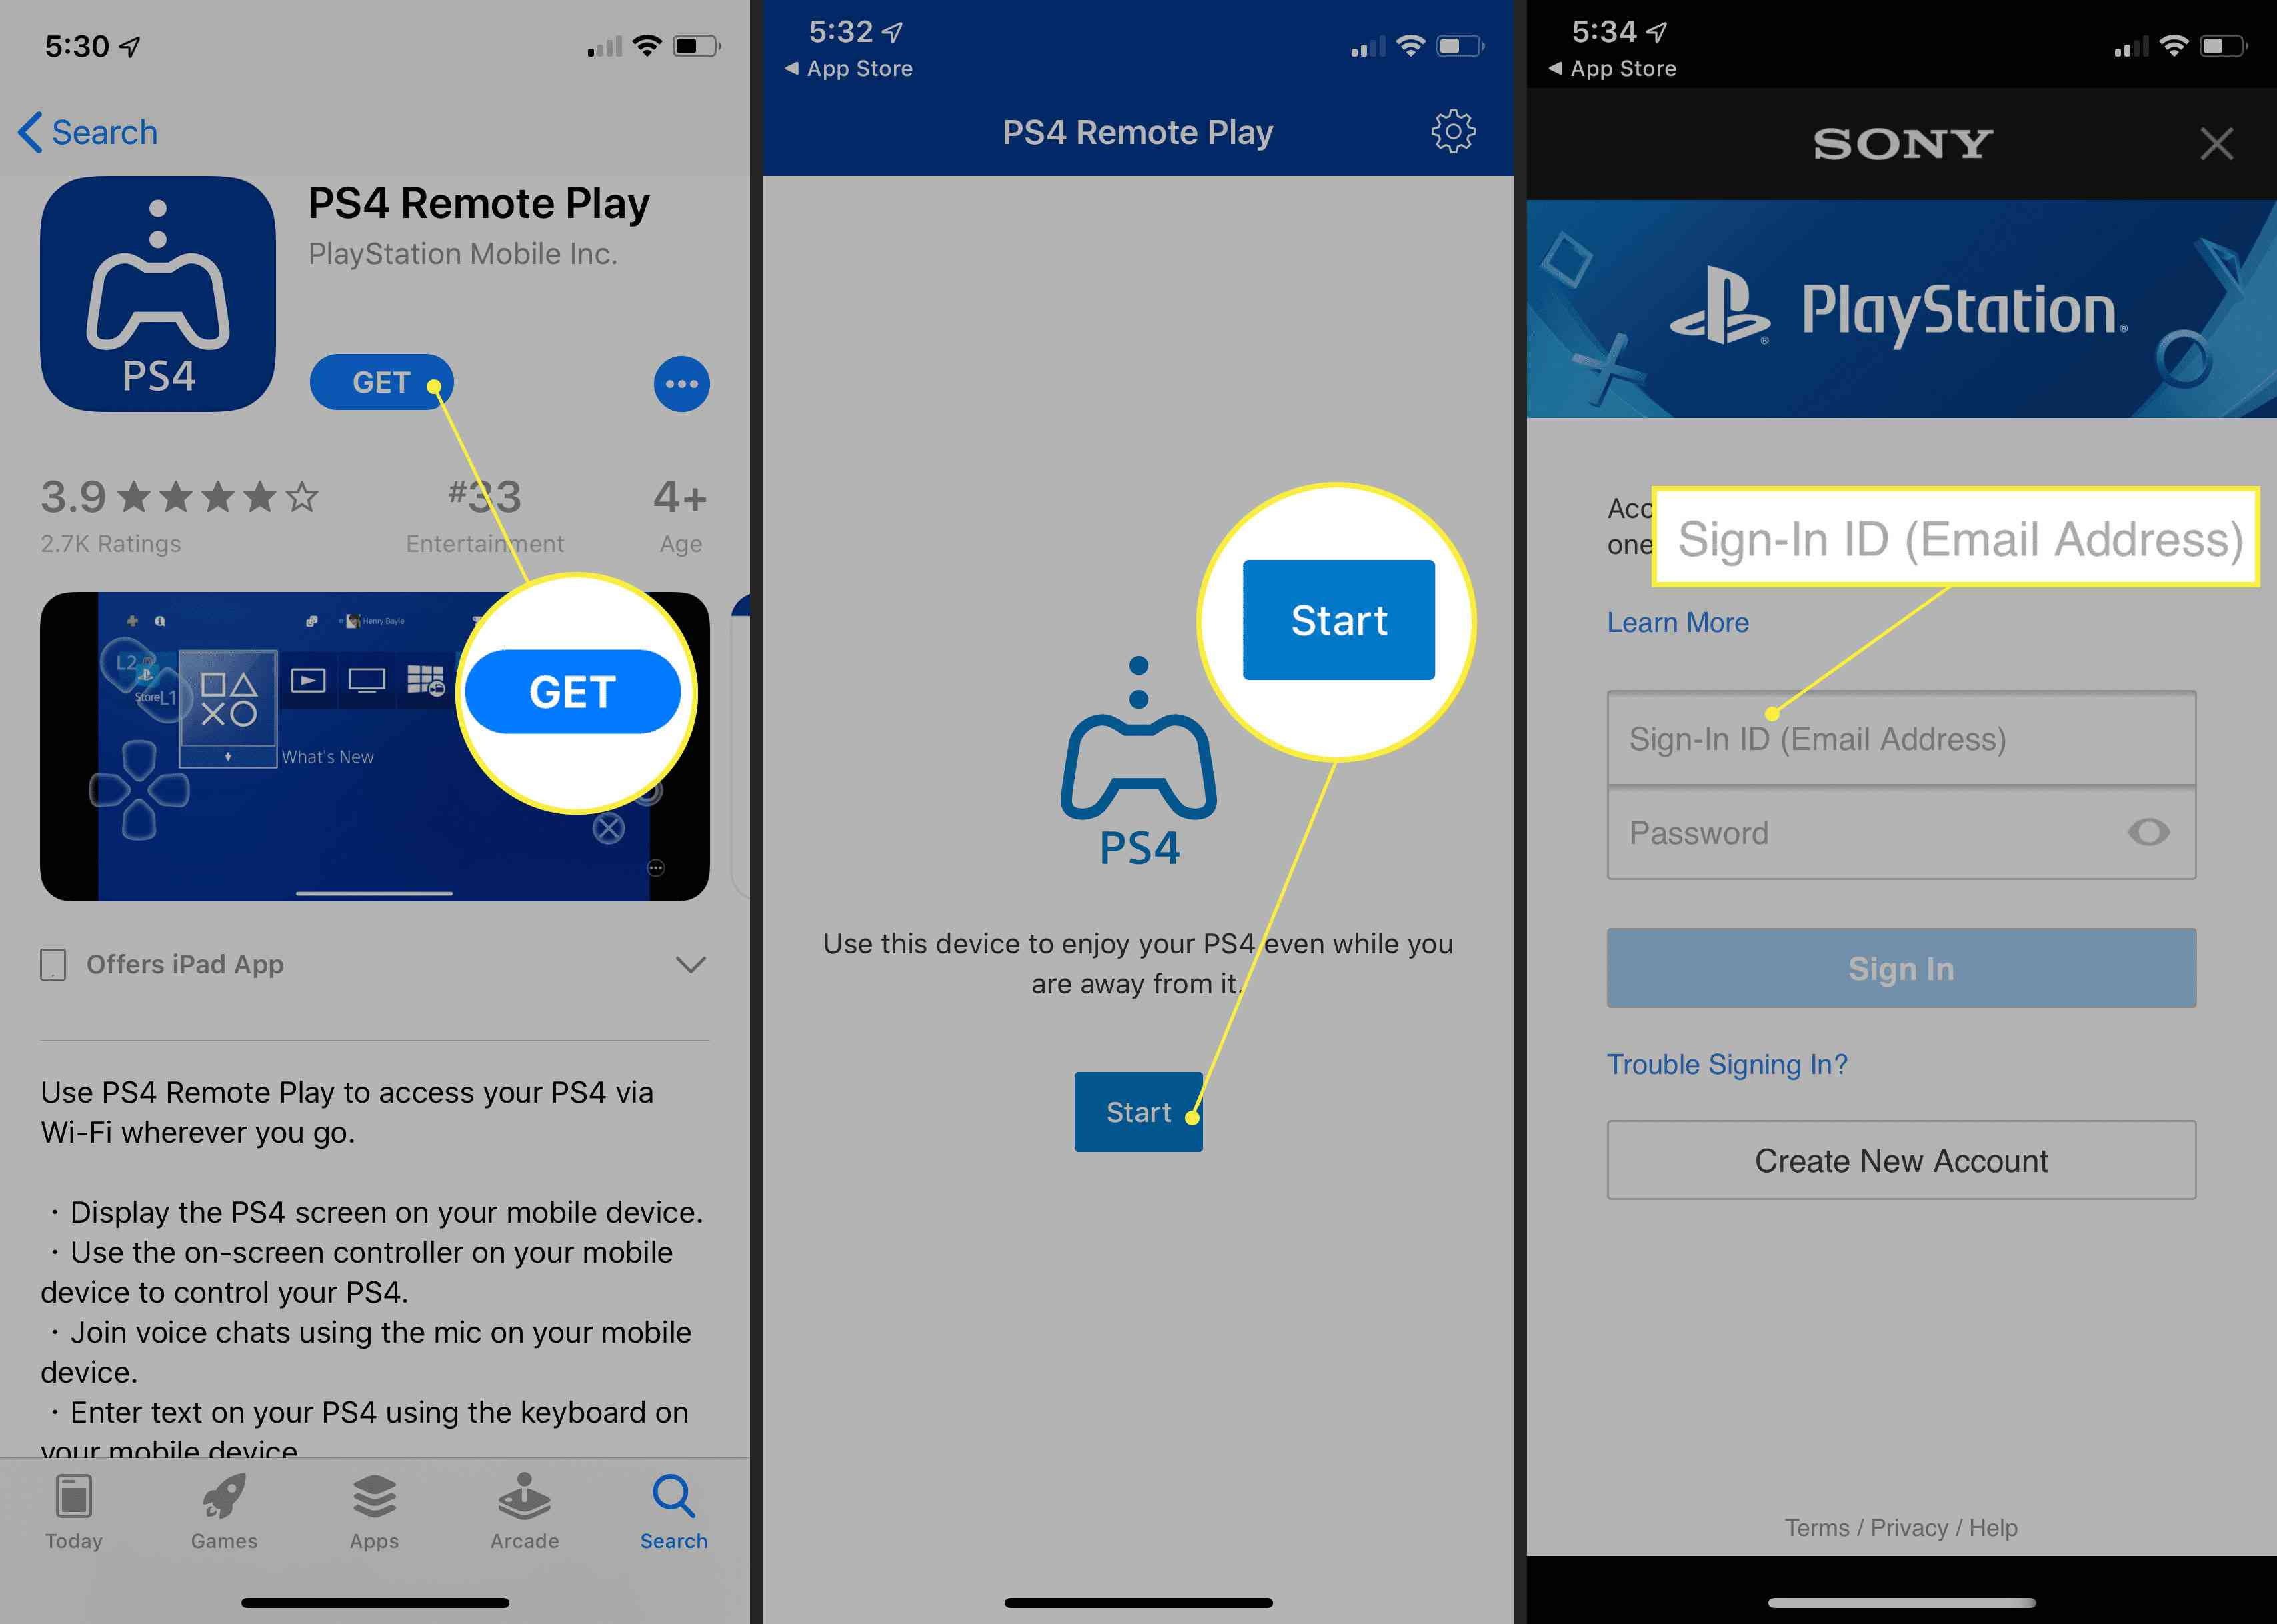 Downloading PS4 Remote Play for iPhone